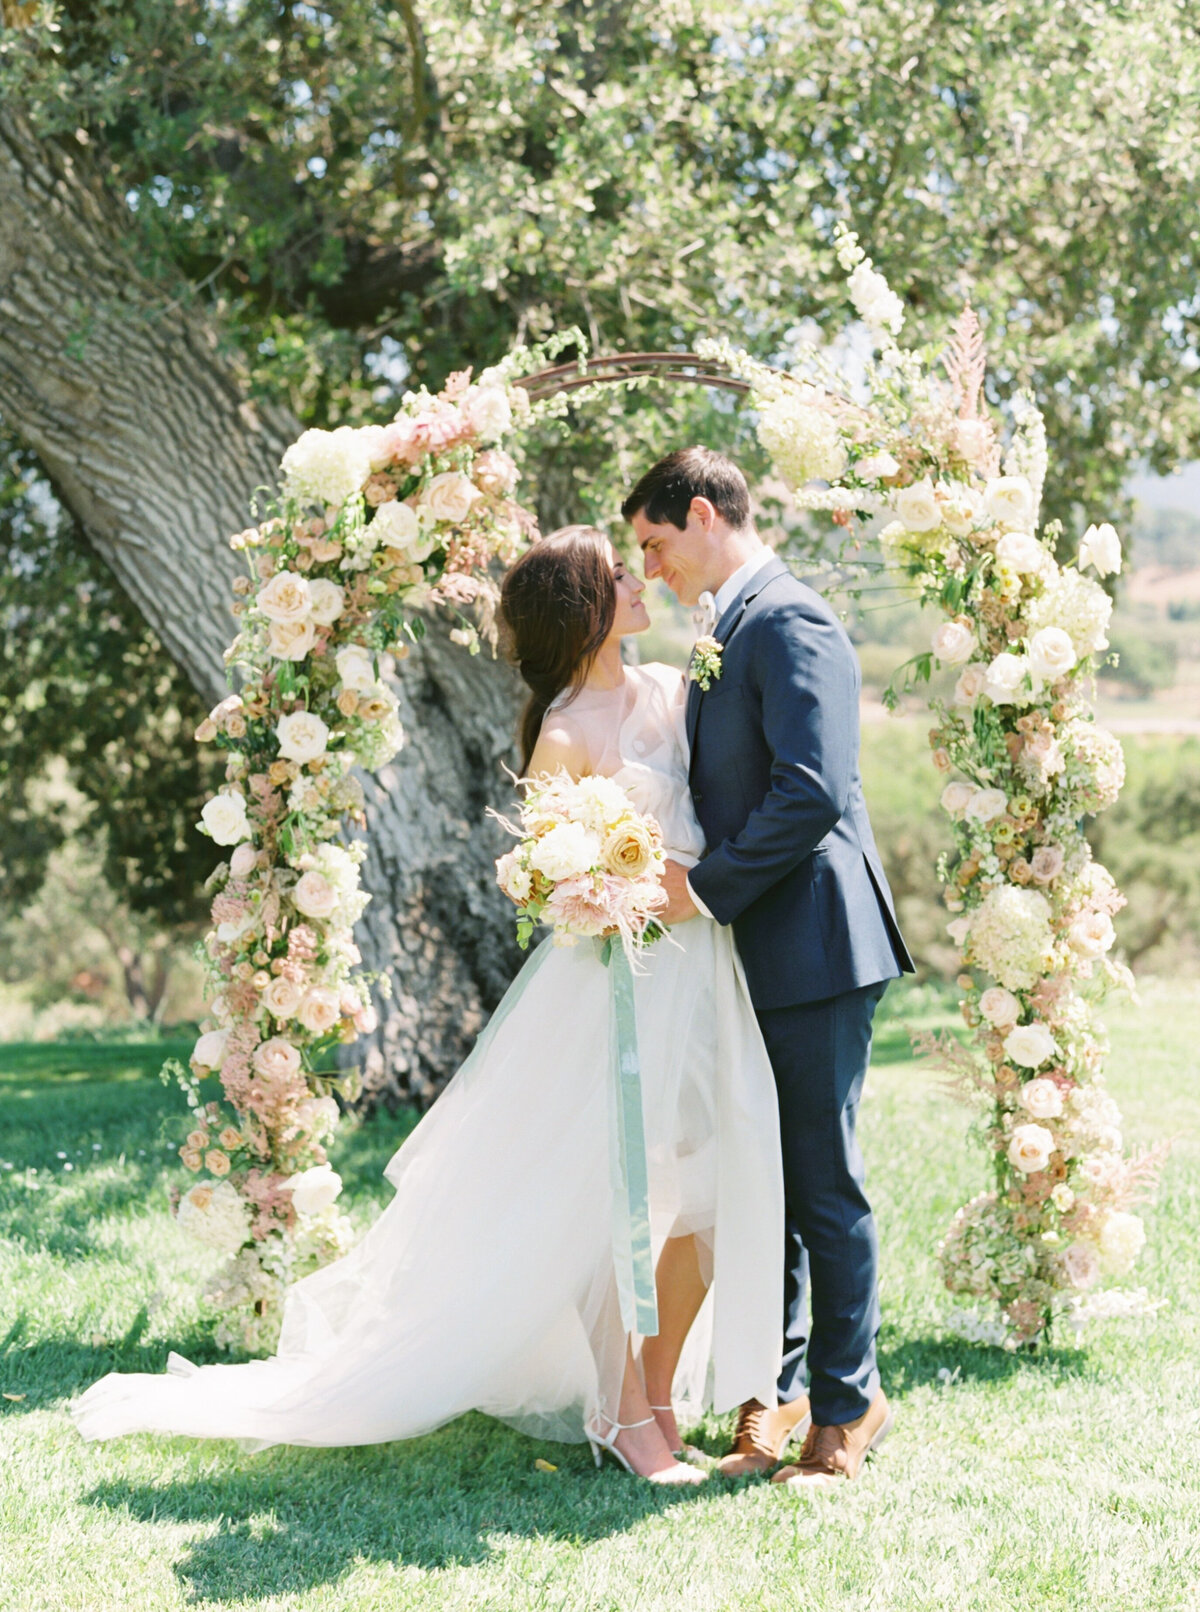 TiffaneyChildsPhotography-CaliforniaWeddingPhotographer-Clara+Alexandre-SunstoneVilla-287